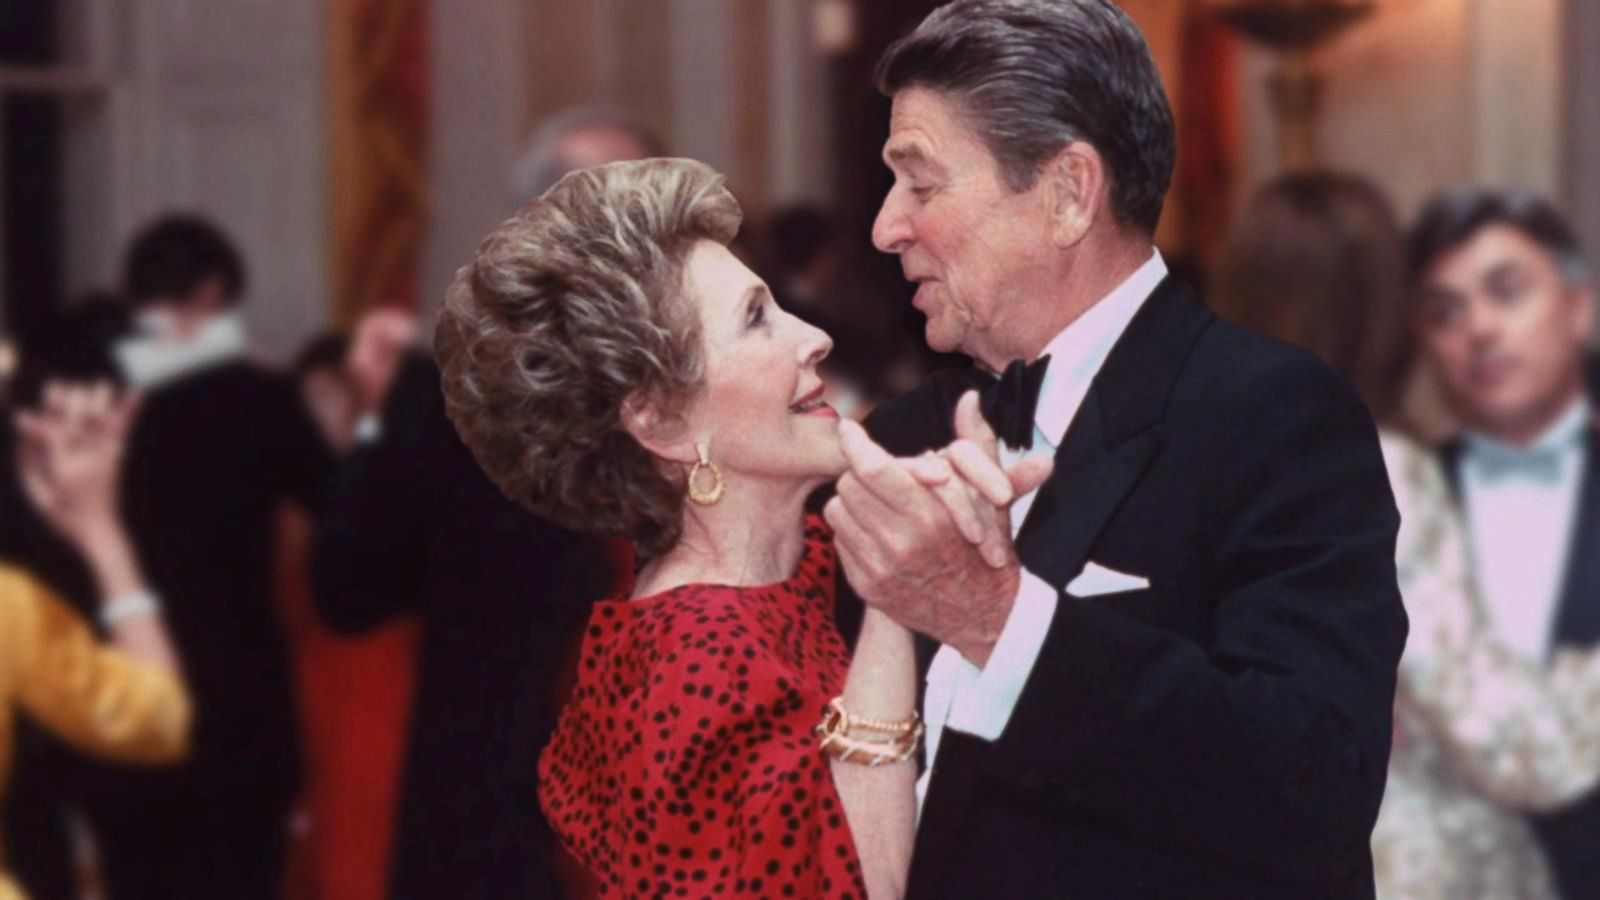 Nancy Reagan met charmante, man Ronald Reagan